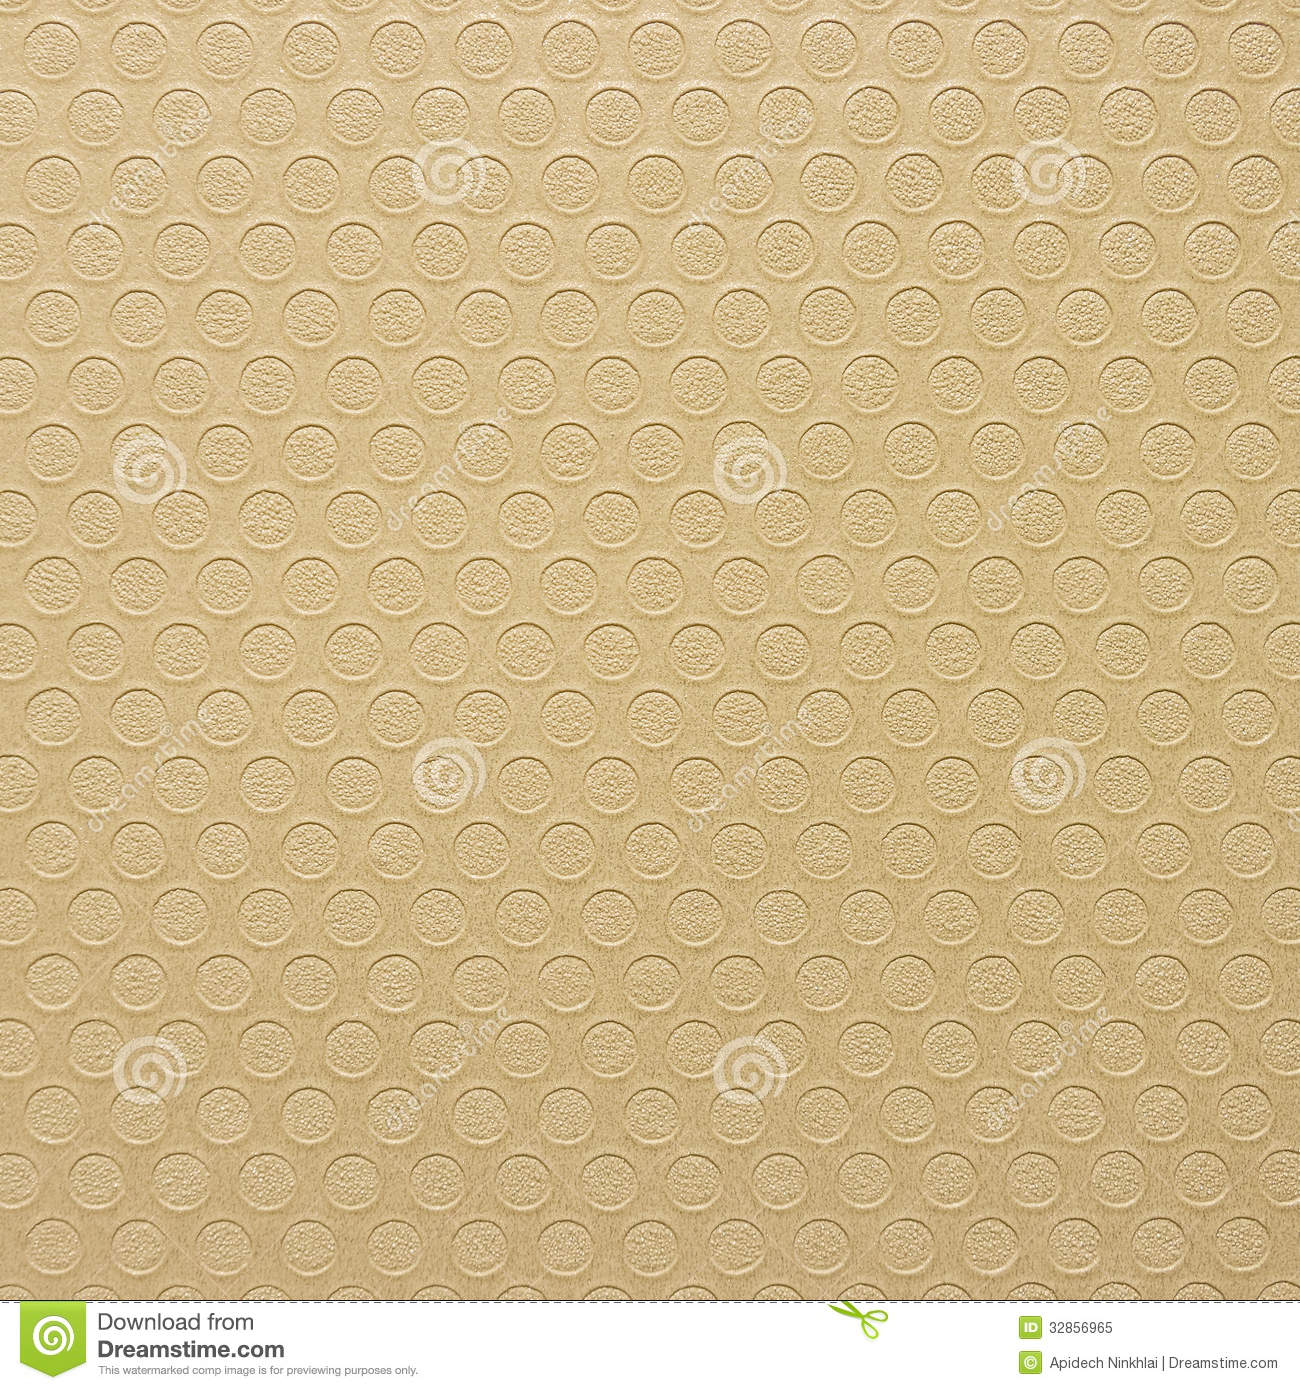 Images Of Wall Texture Design : Circle pattern wall royalty free stock photo image